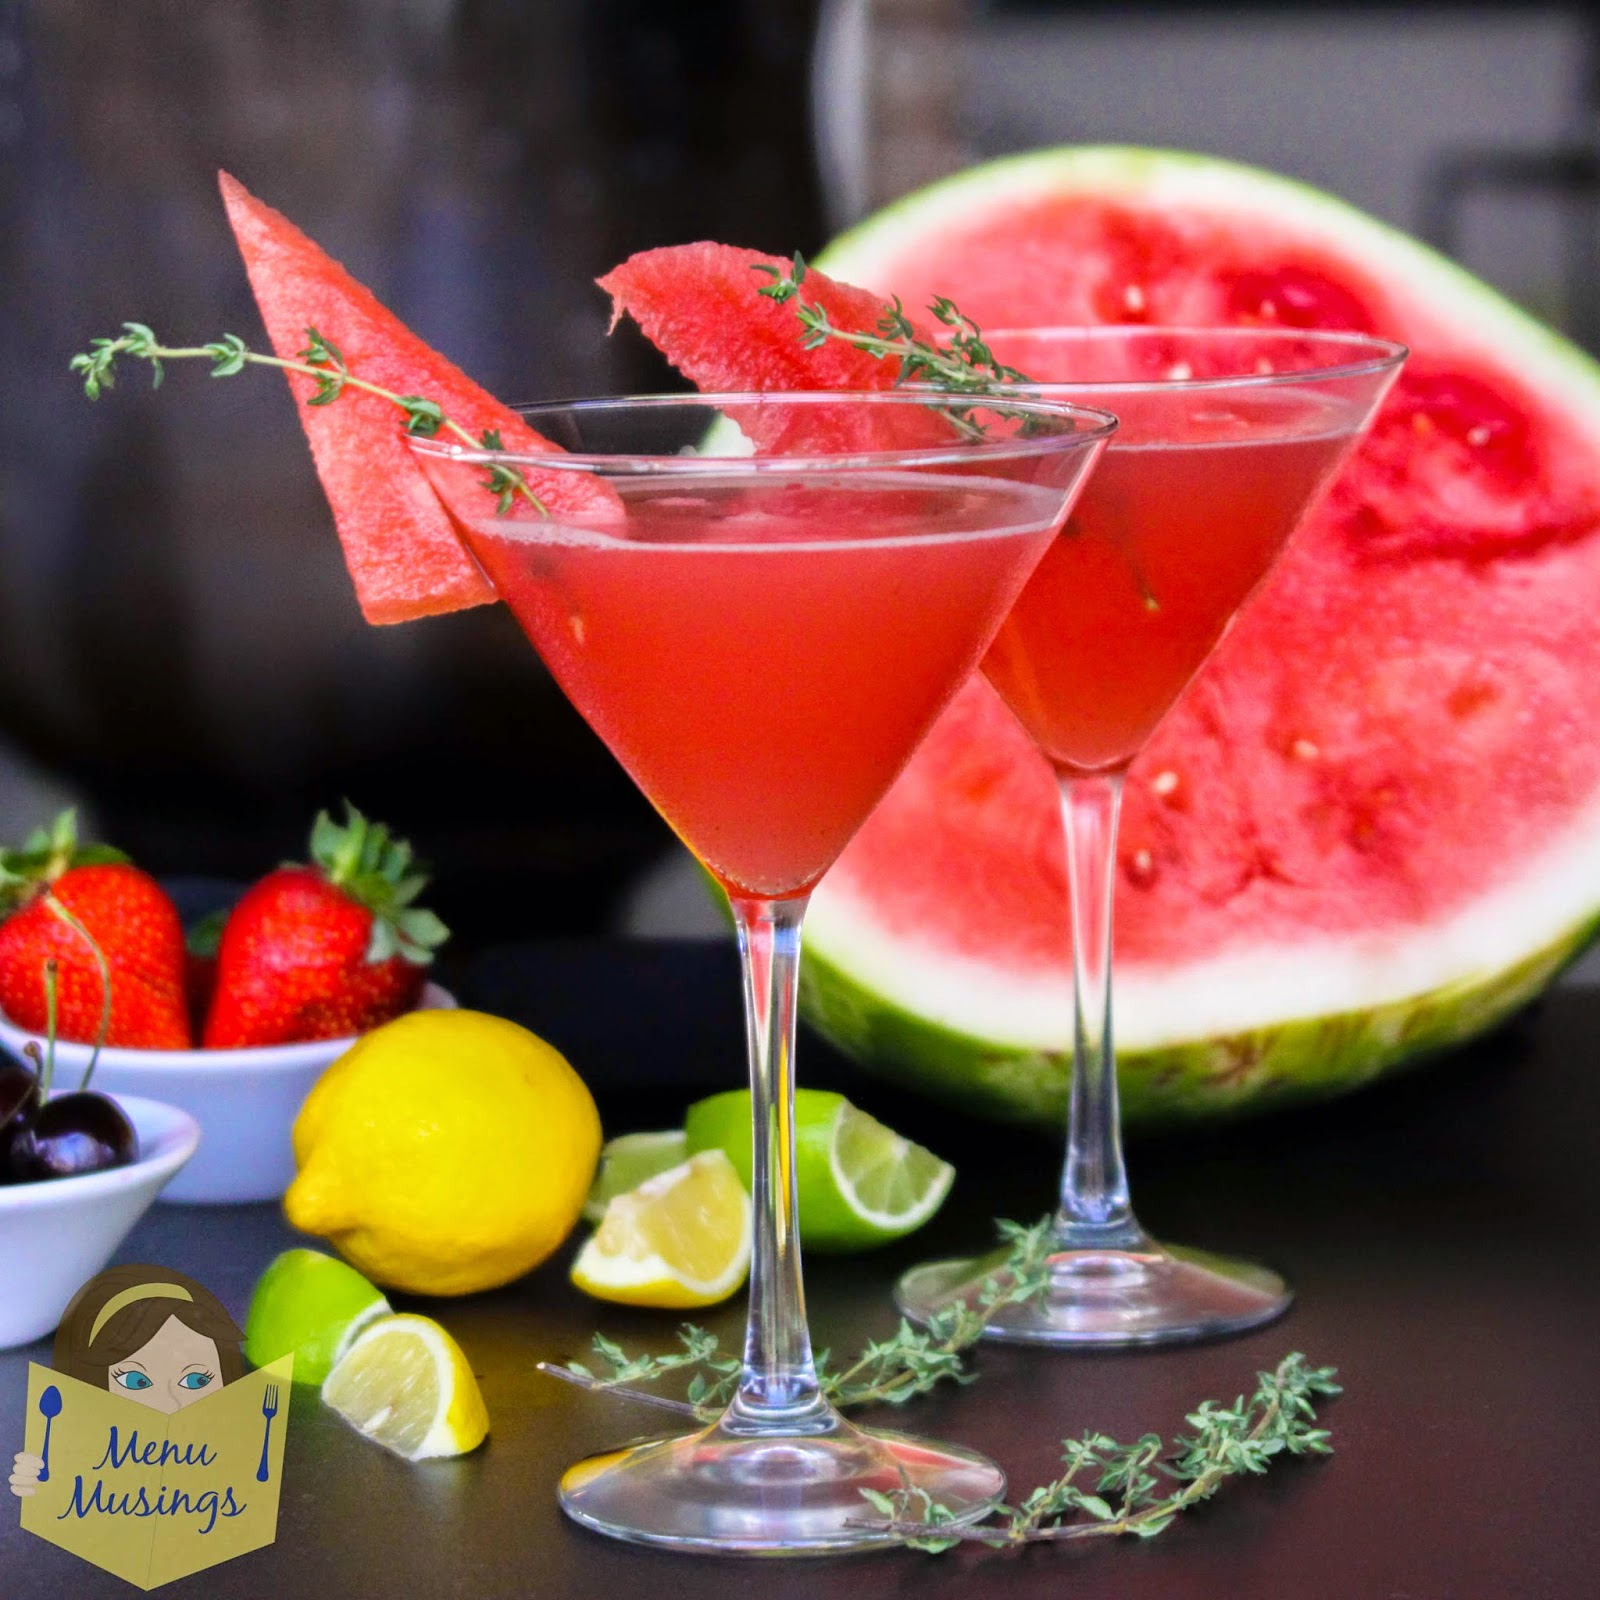 Menu Musings of a Modern American Mom: Watermelon Thyme Martini